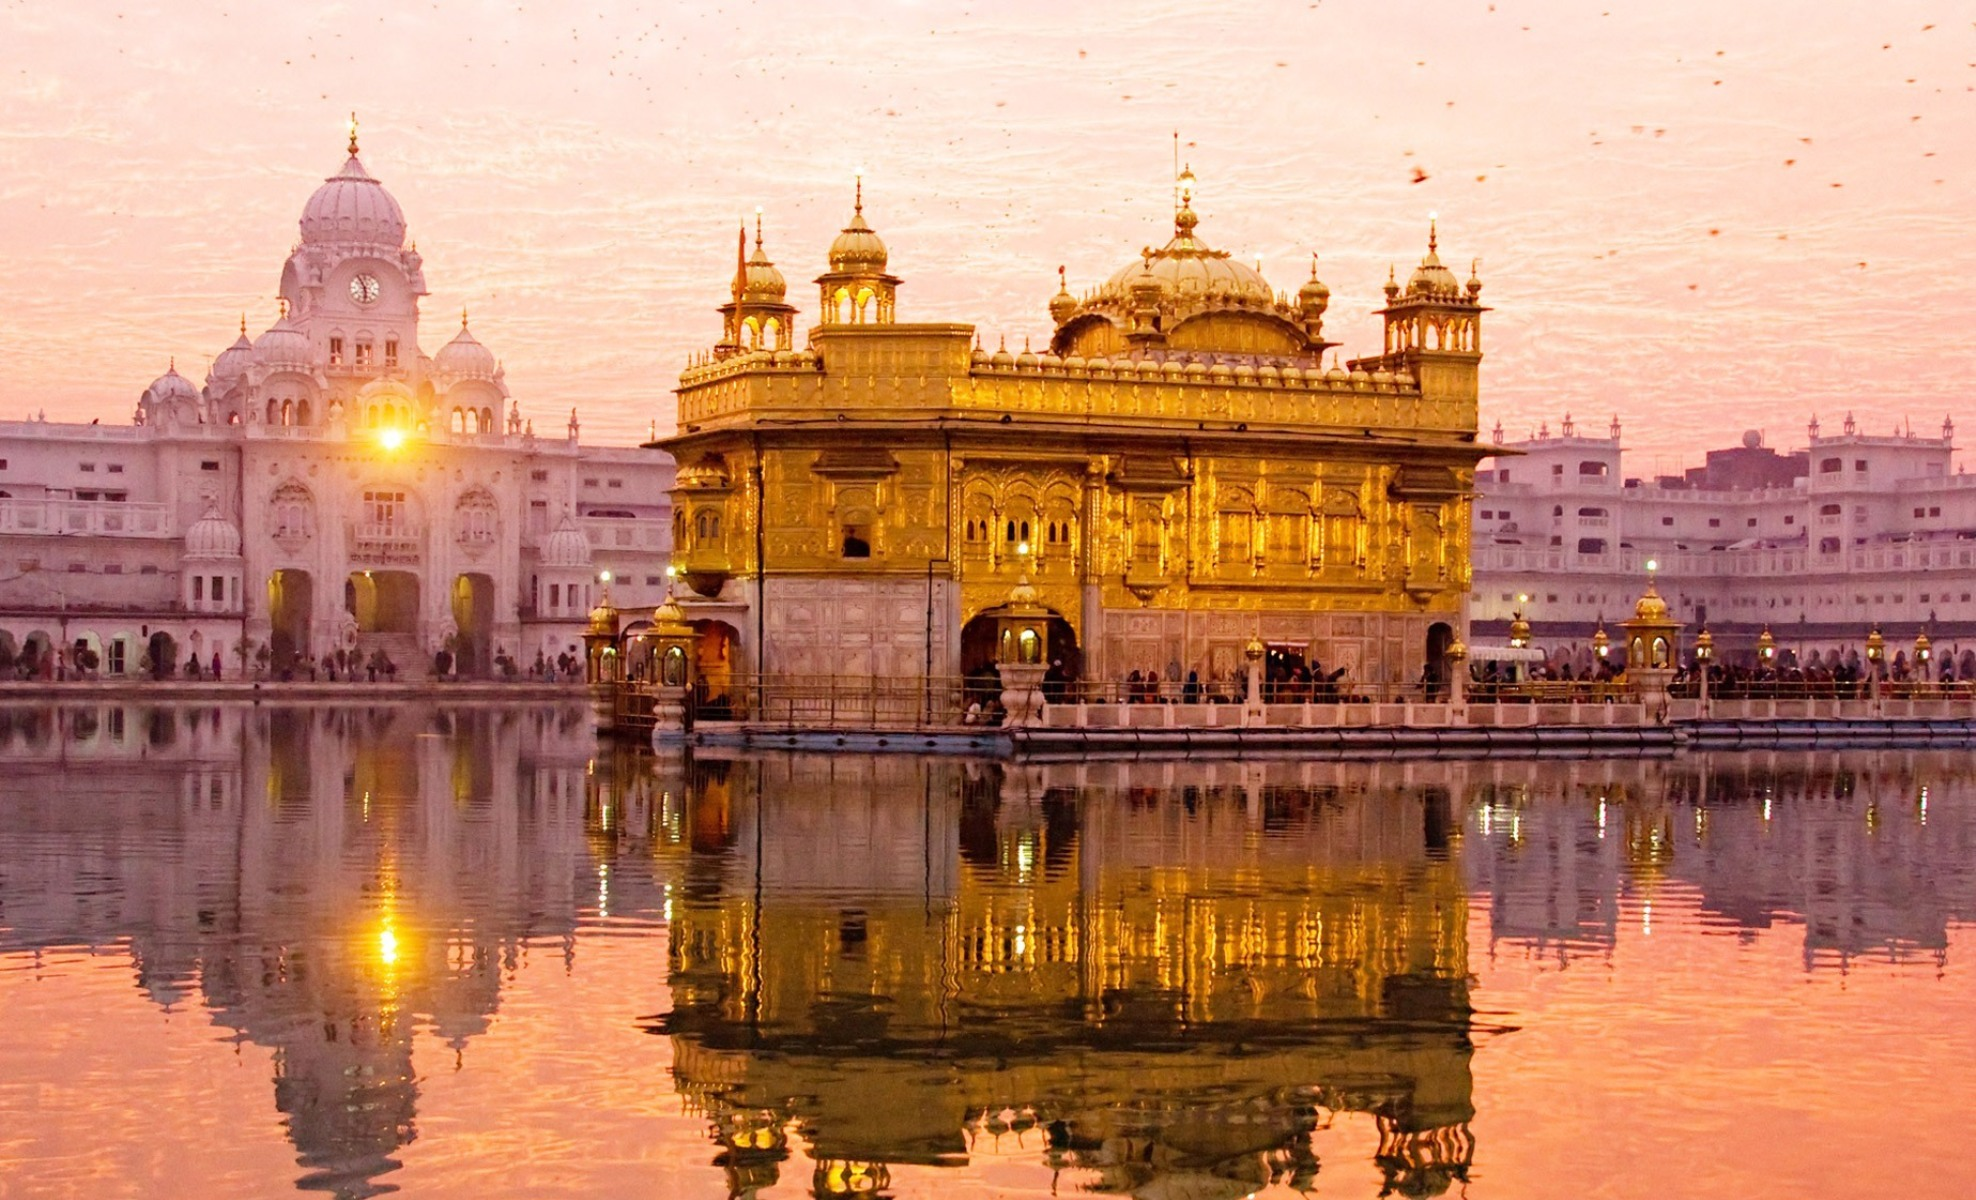 Indian Hd Backgrounds: 6 Golden Temple HD Wallpapers